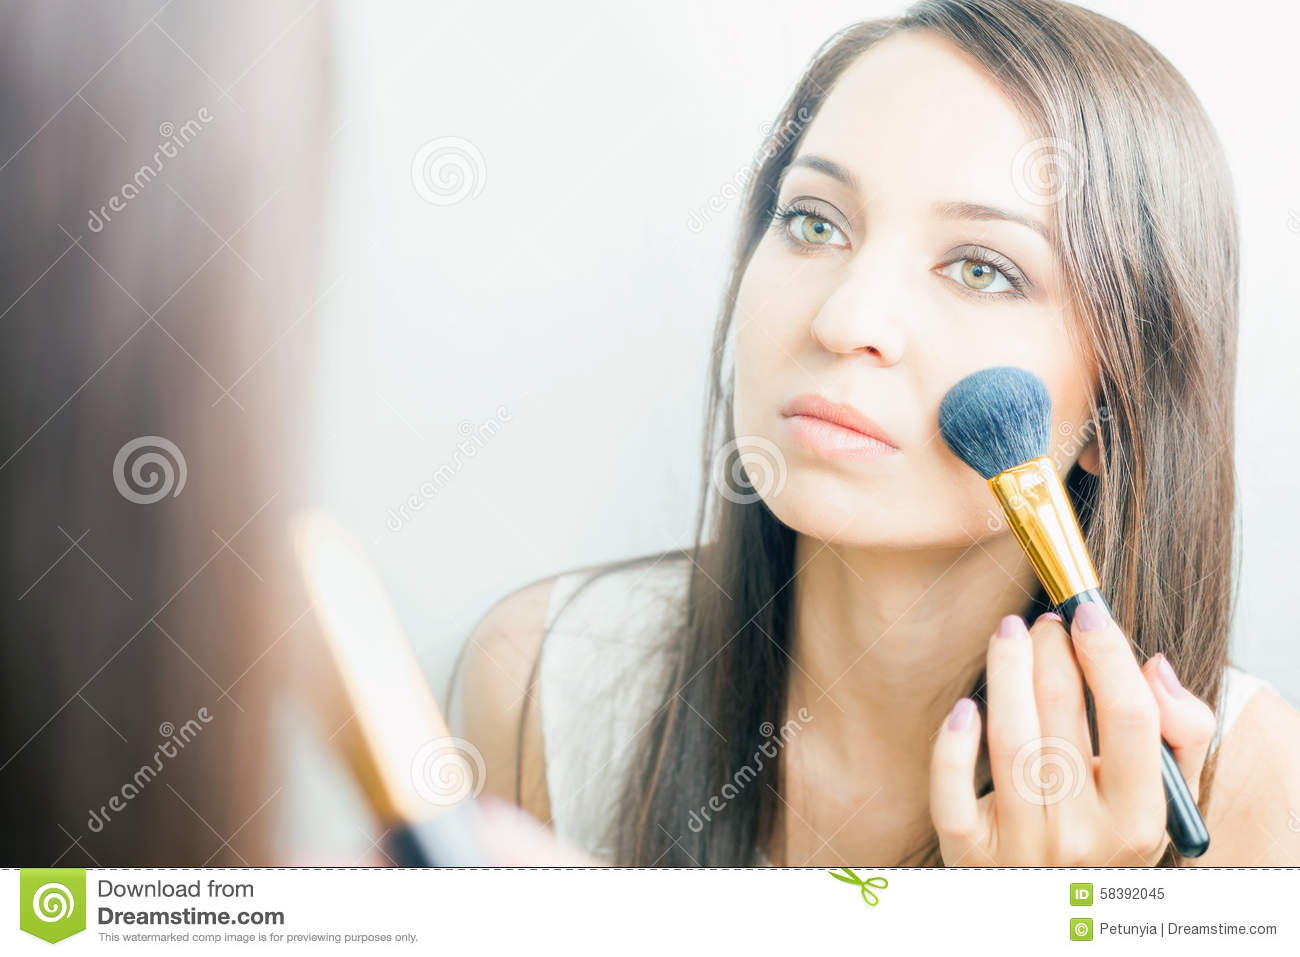 Makeup artist woman doing make up using cosmetic brush for yourself download makeup artist woman doing make up using cosmetic brush for yourself stock image solutioingenieria Image collections